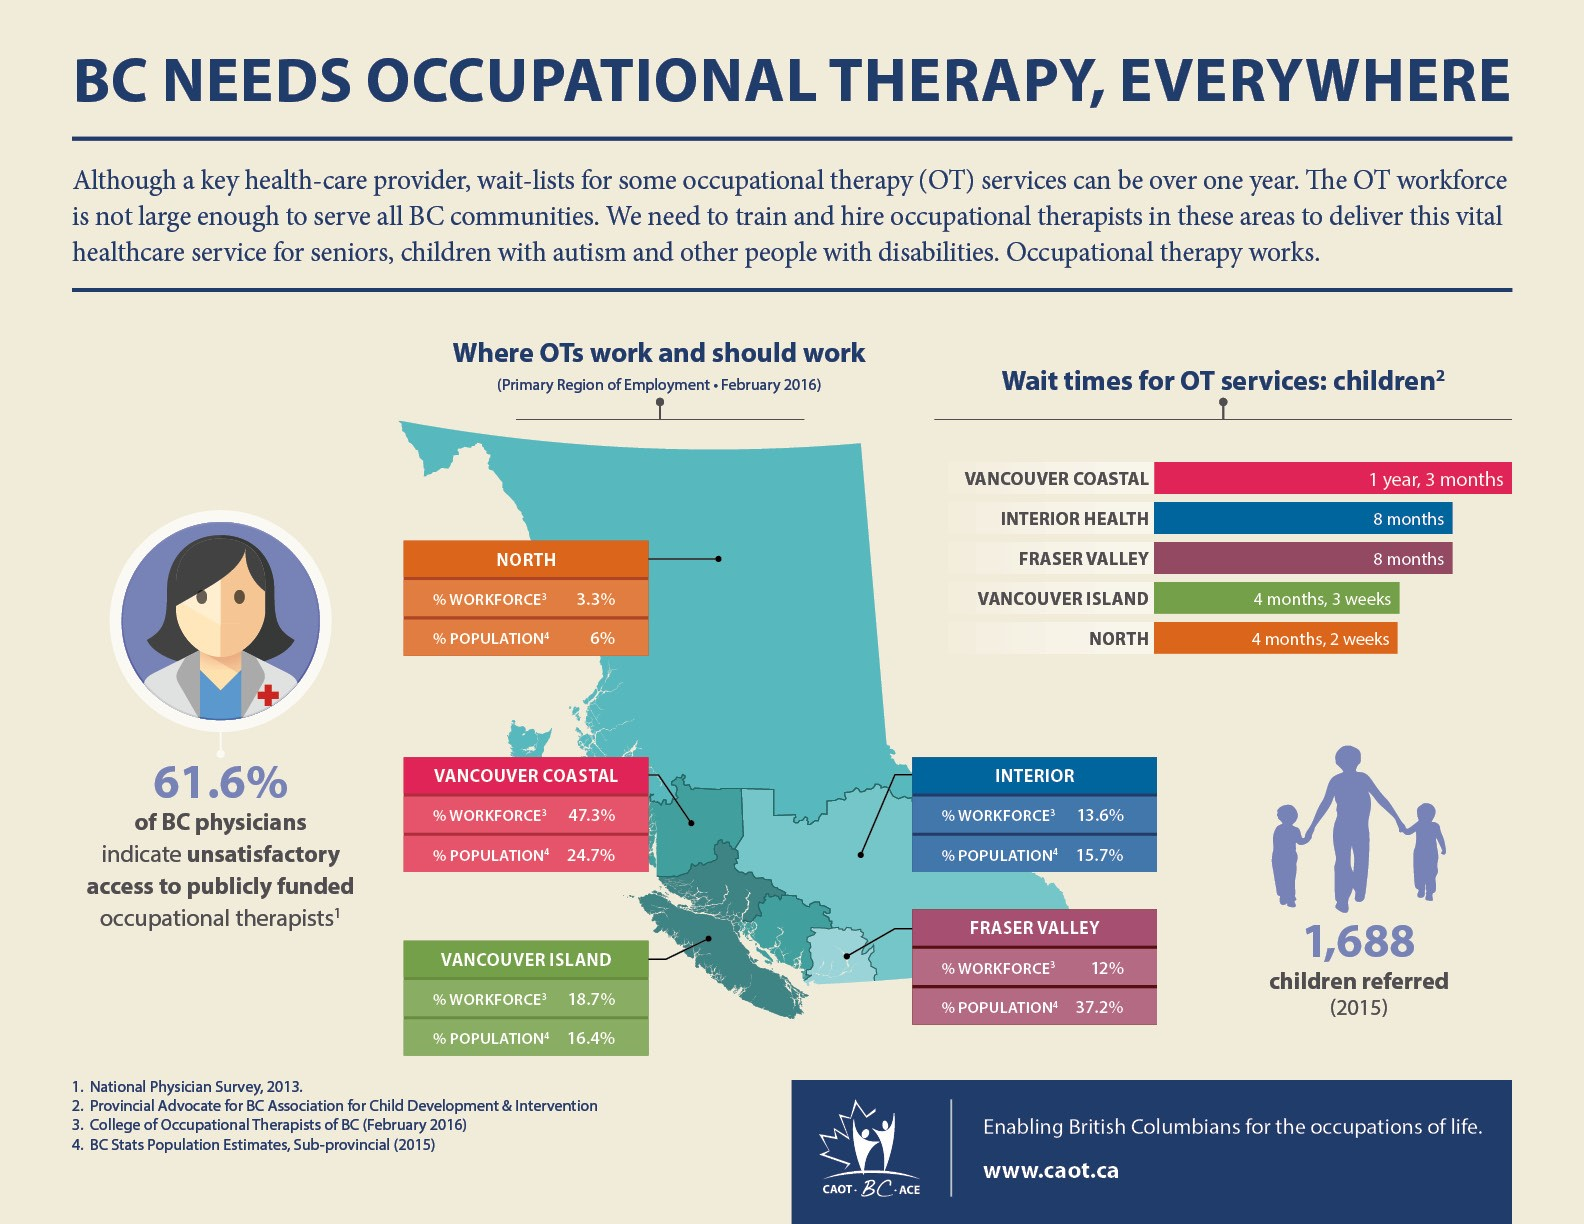 BC Needs Occupational Therapy, Everywhere Inforgraphic